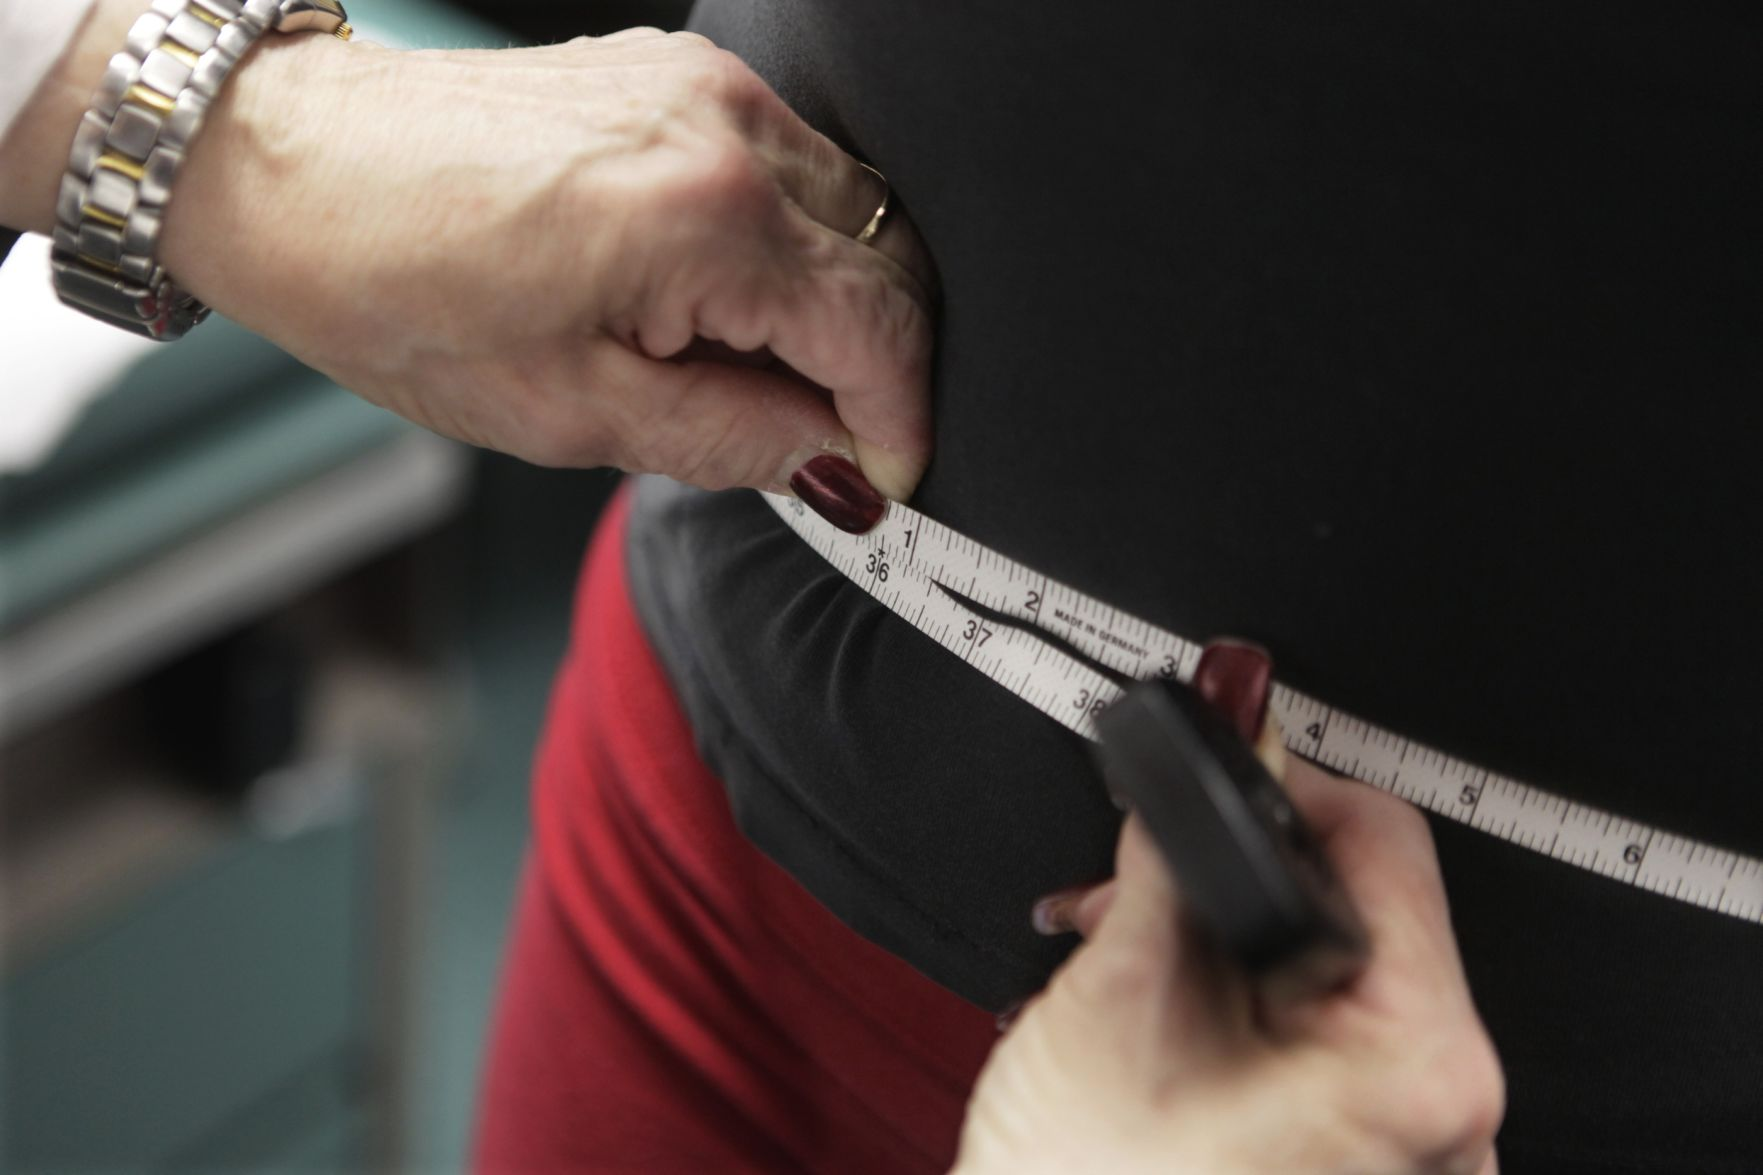 Minnesota Obesity Rate Saw Rise in 2016